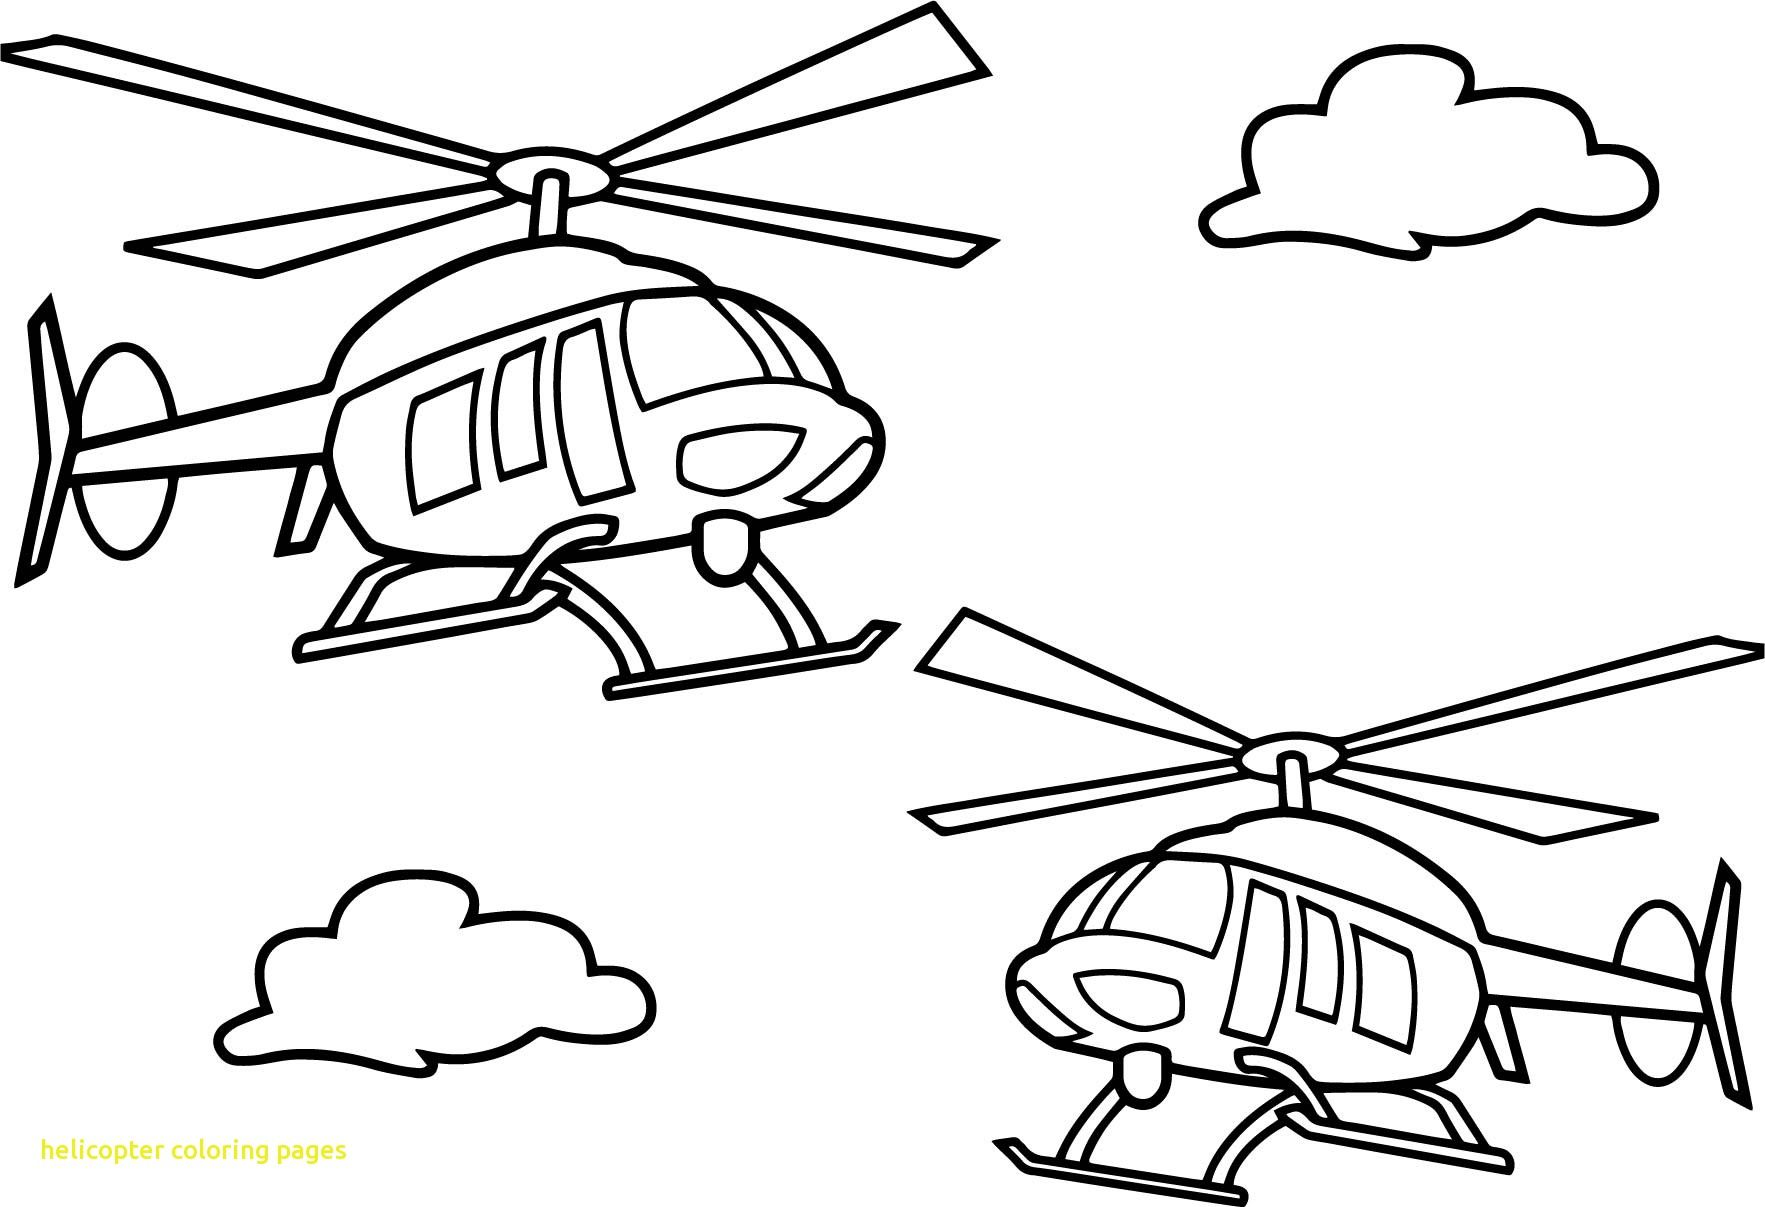 Air Transport Colouring Pages Coloring Pages Helicopter